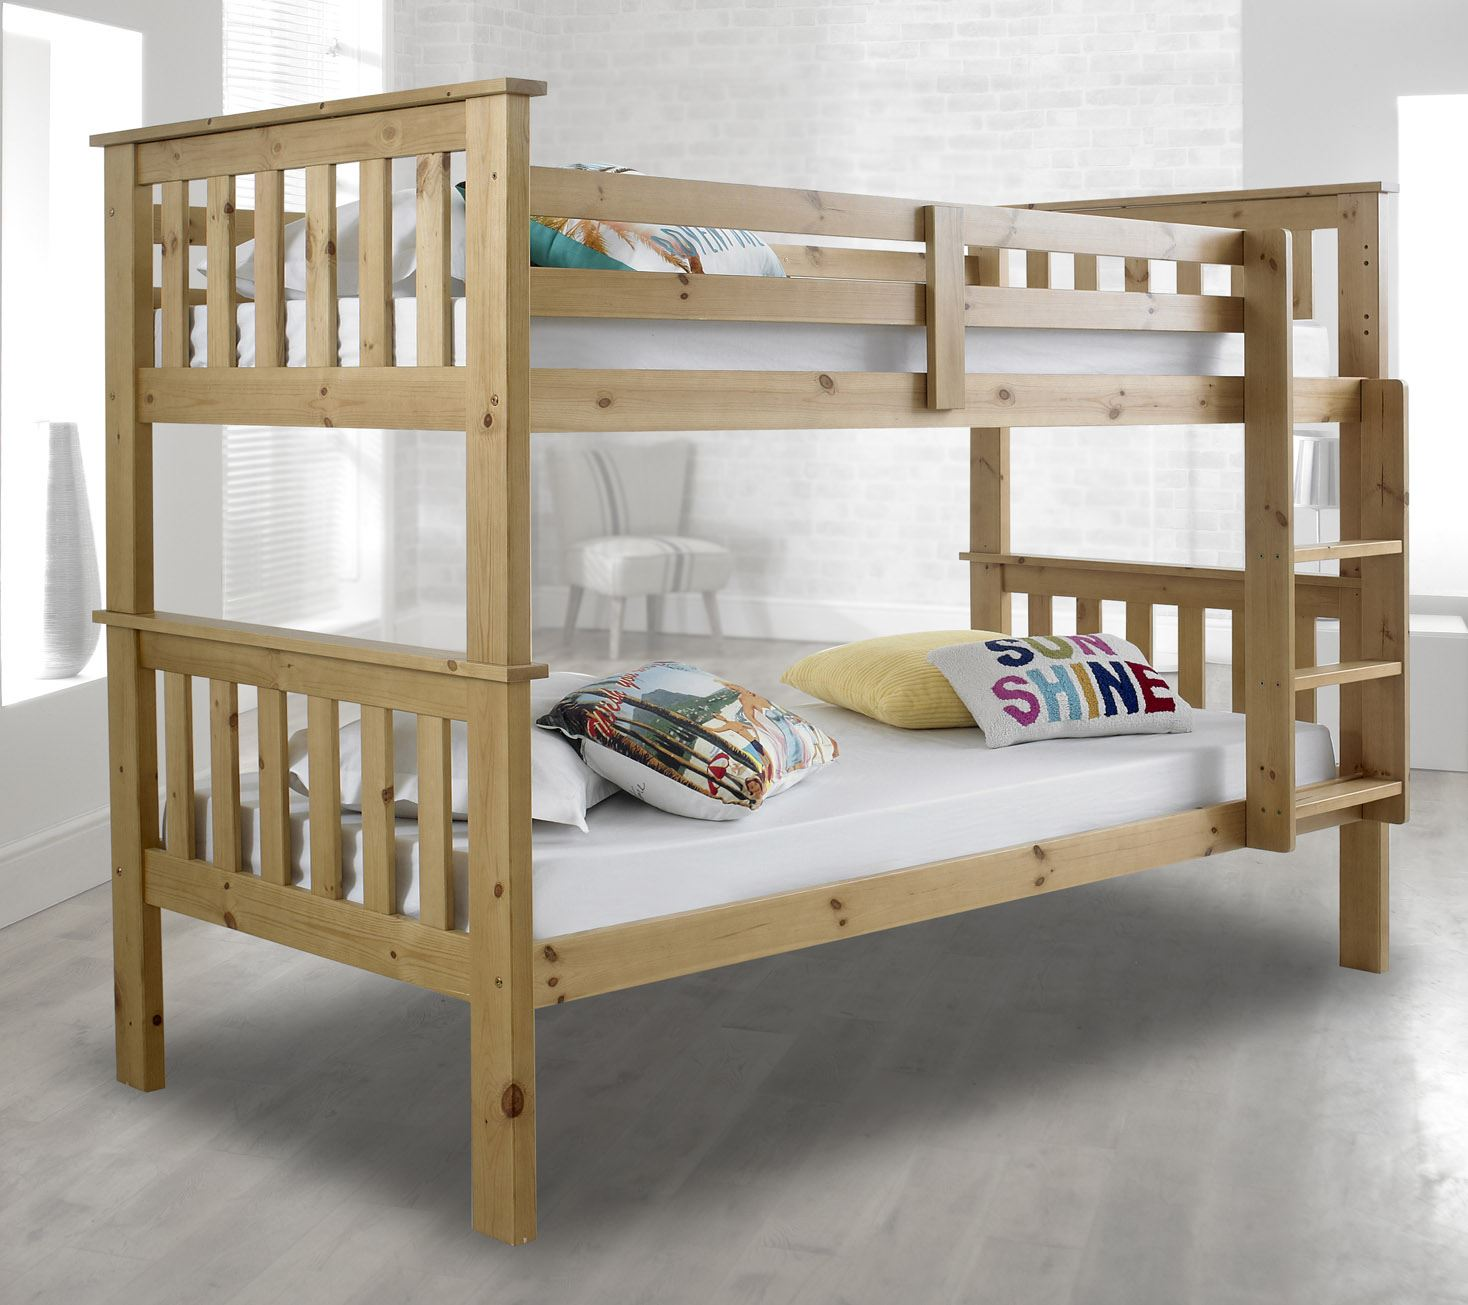 Happy beds atlantis wooden bunk bed 3ft single solid pine for Single bunk bed